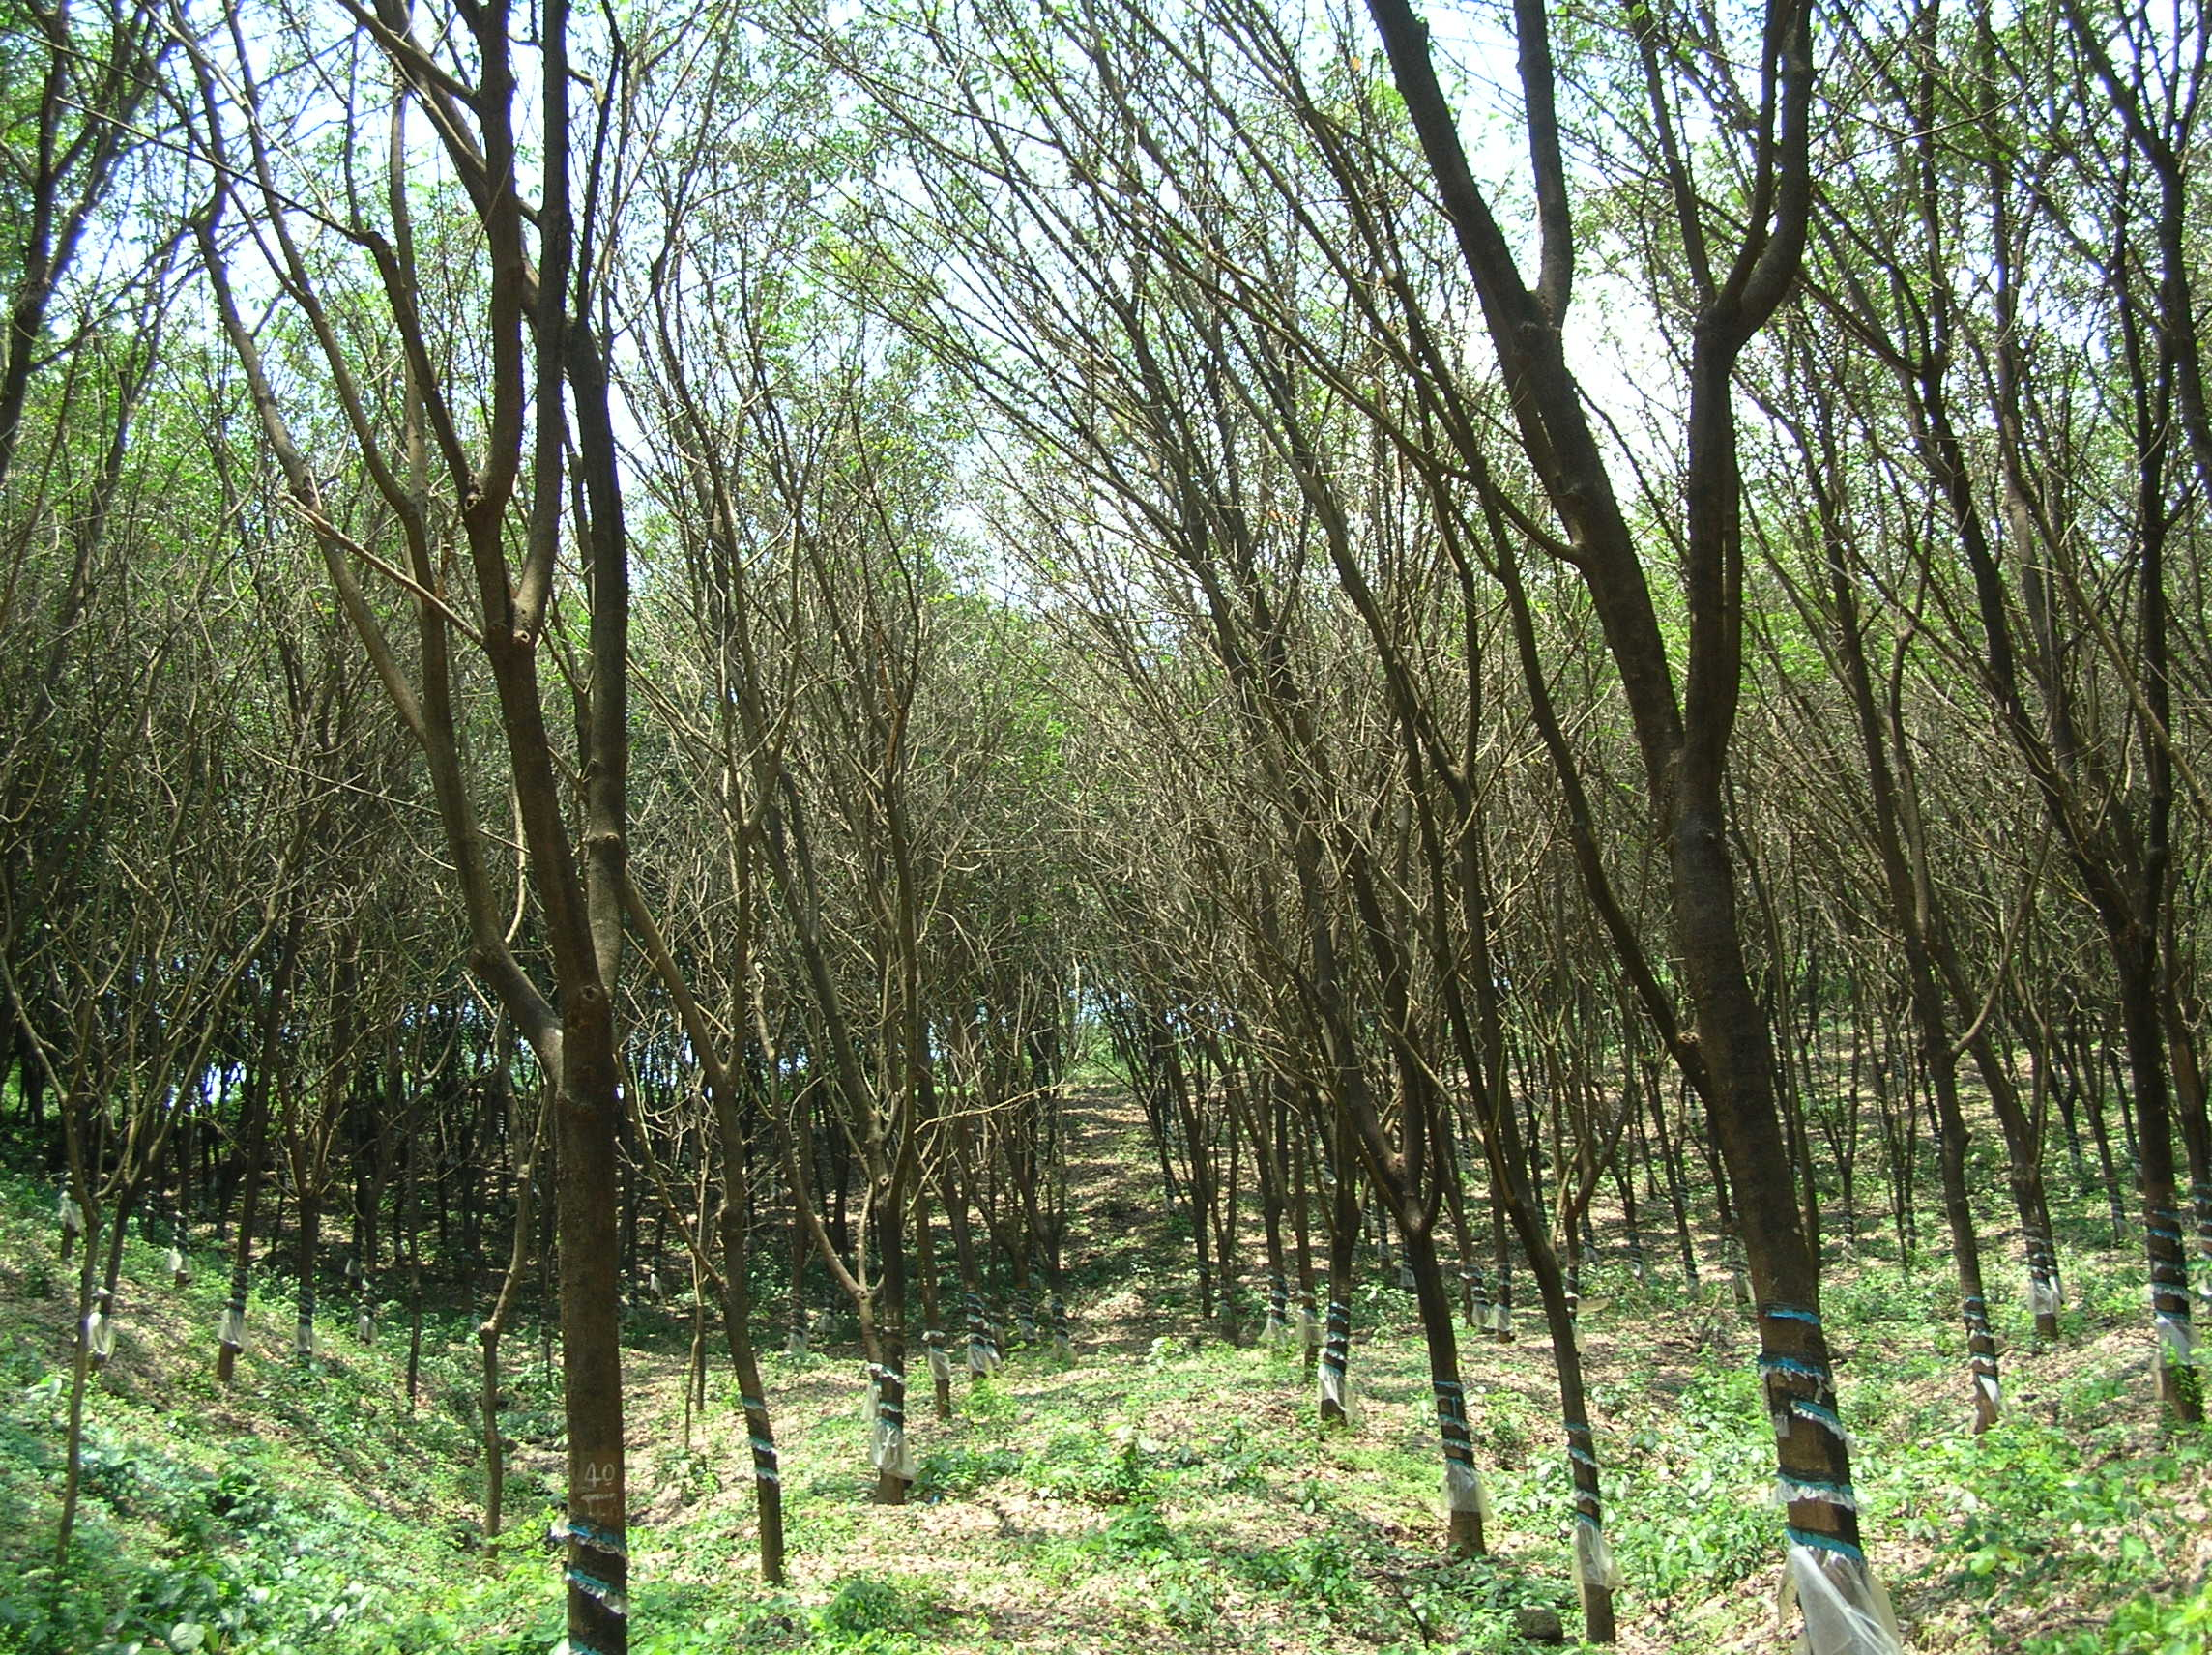 Diseases in rubber plants